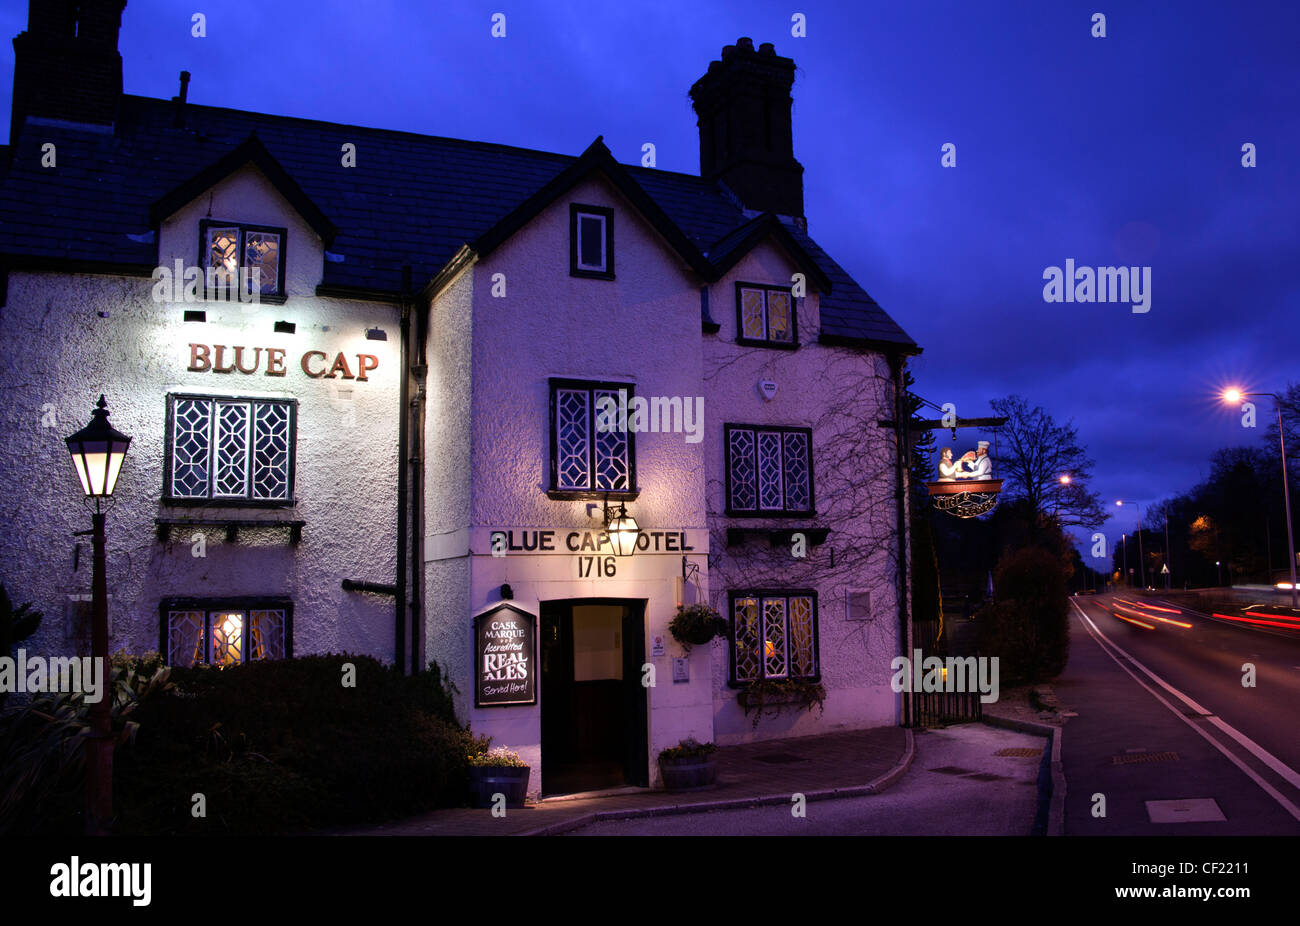 Blue,Cap,historic,Pub,and,drinking,place,A556,at,Dusk,Cheshire,England,United,Kingdom,gotonysmith,Blue,Cap,Cheshire,named,after,a,noted,18th,century,foxhound,marked,with,a,dark,patch,on,its,head,night,shot,blue,hour,bluehour,near,road,fast,country,inn,tourist,attraction,Blue,Cap,Pub,A556,Dusk,The,Blue,Cap,in,Cheshire,was,named,after,a,noted,18th,century,foxhound,marked,with,a,dark,patch,on,its,head,ales,CAMRA,public,house,Dark,beer,gotonysmith,Buy Pictures of,Buy Images Of